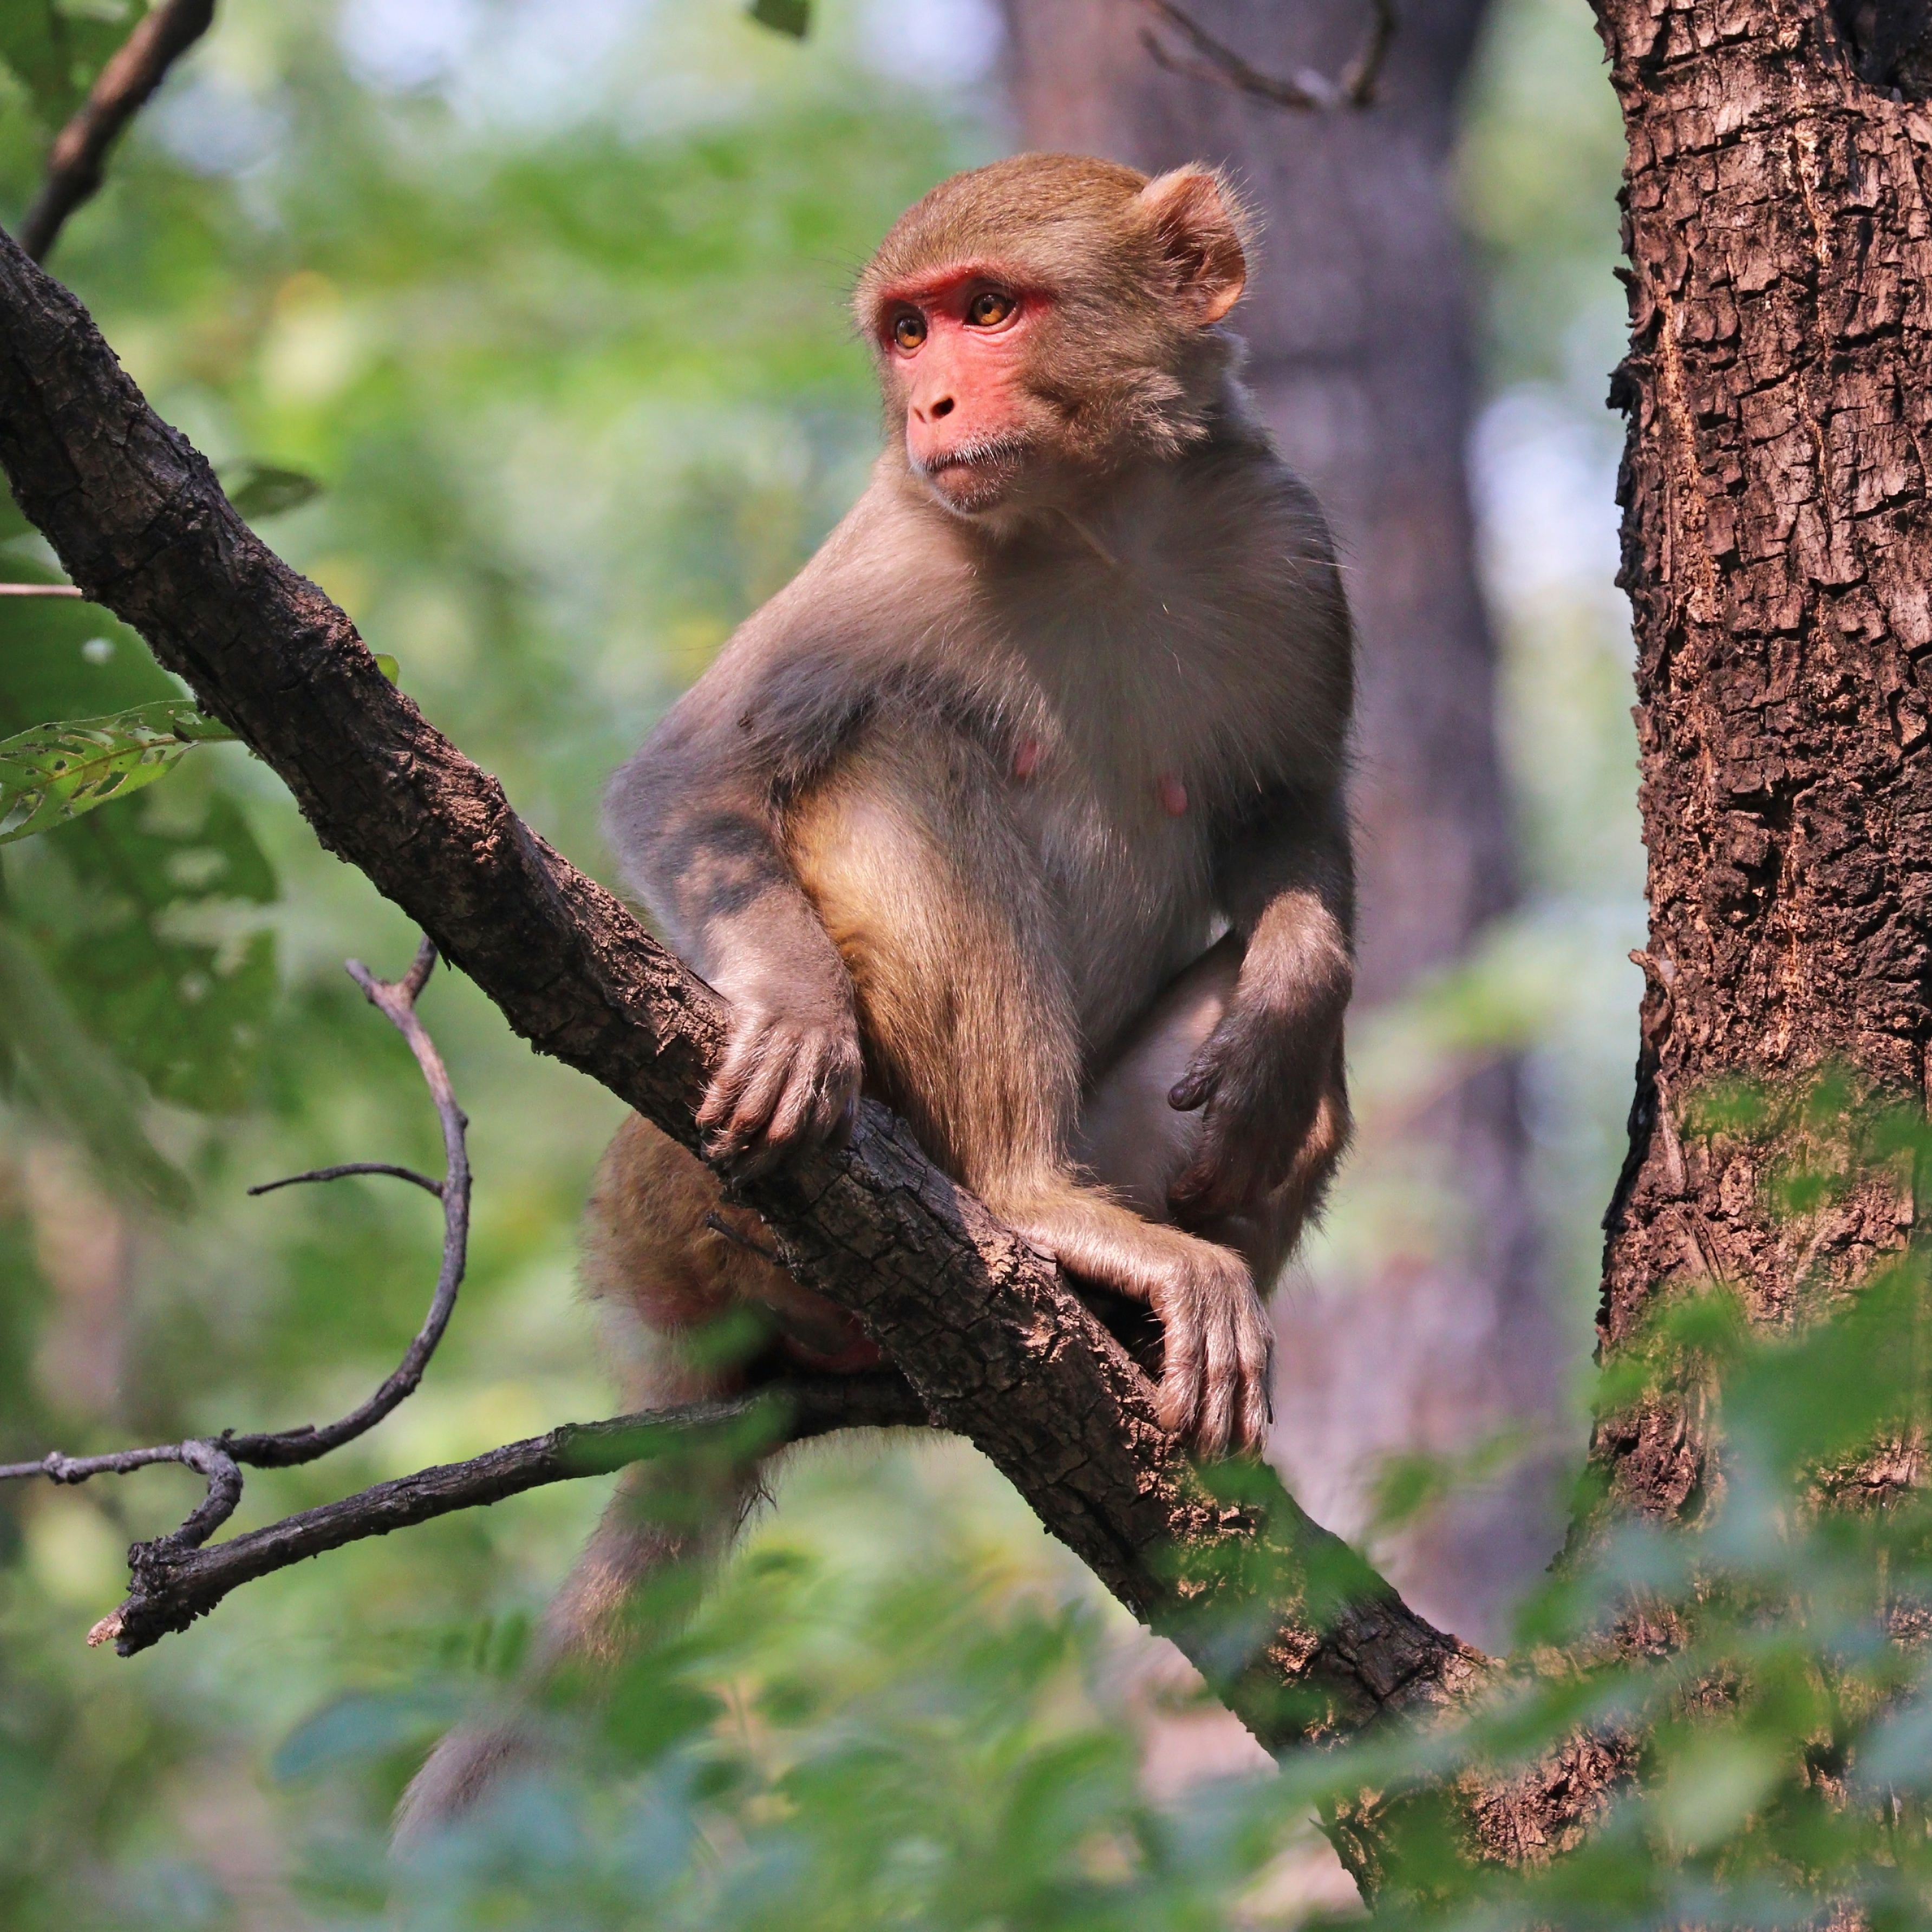 Rhesus macaque - Wikipedia